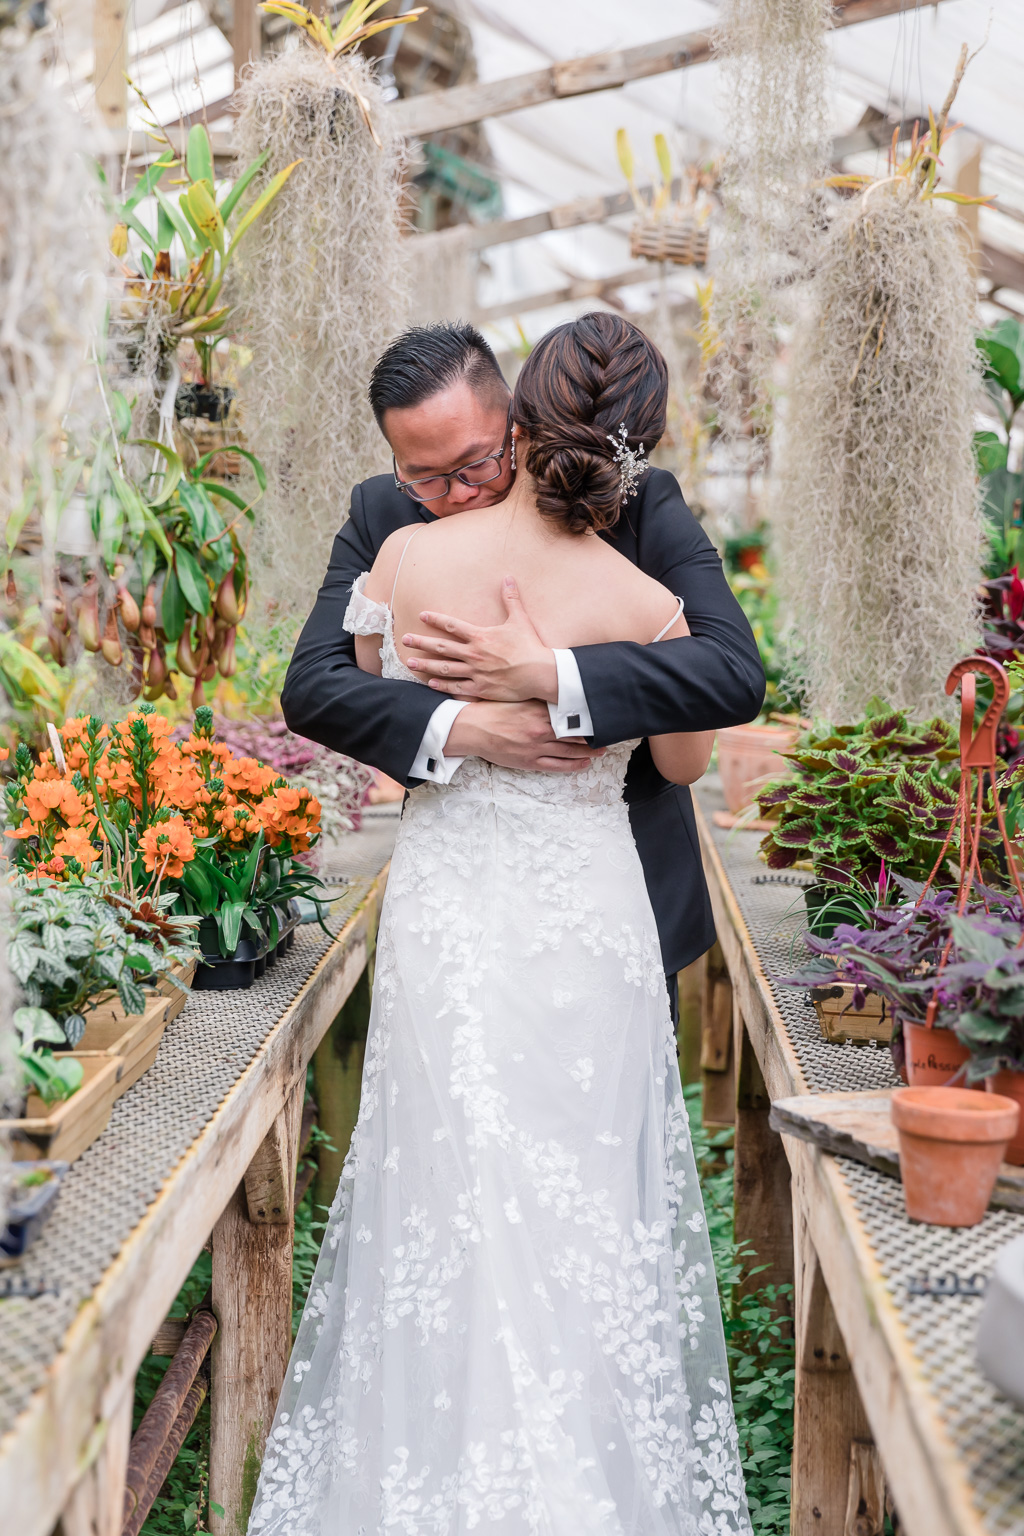 a touching wedding first look at Shelldance Orchid Gardens